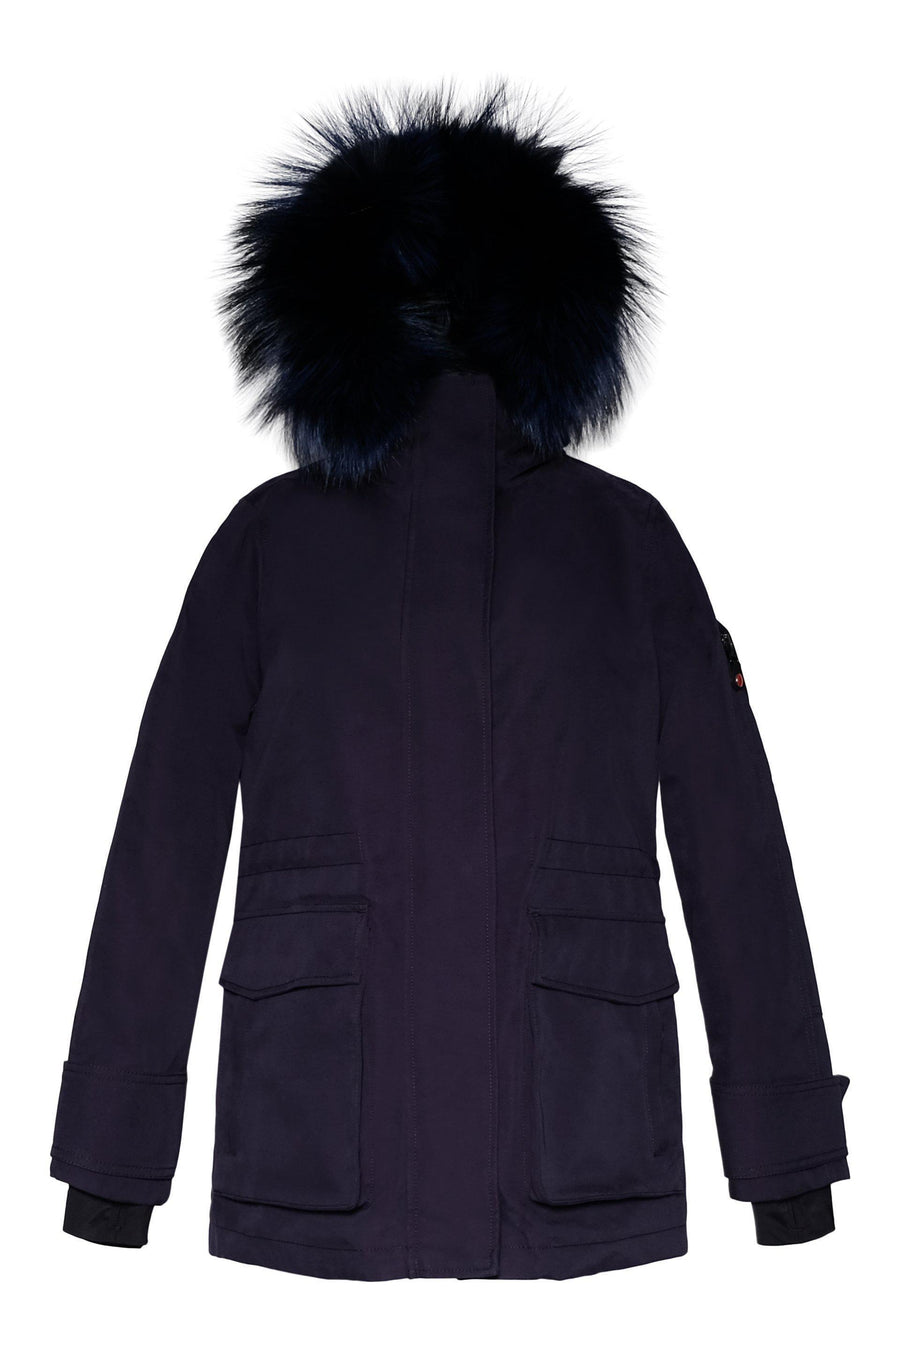 Coats Mid Parka 49Winters Conspiracy New York